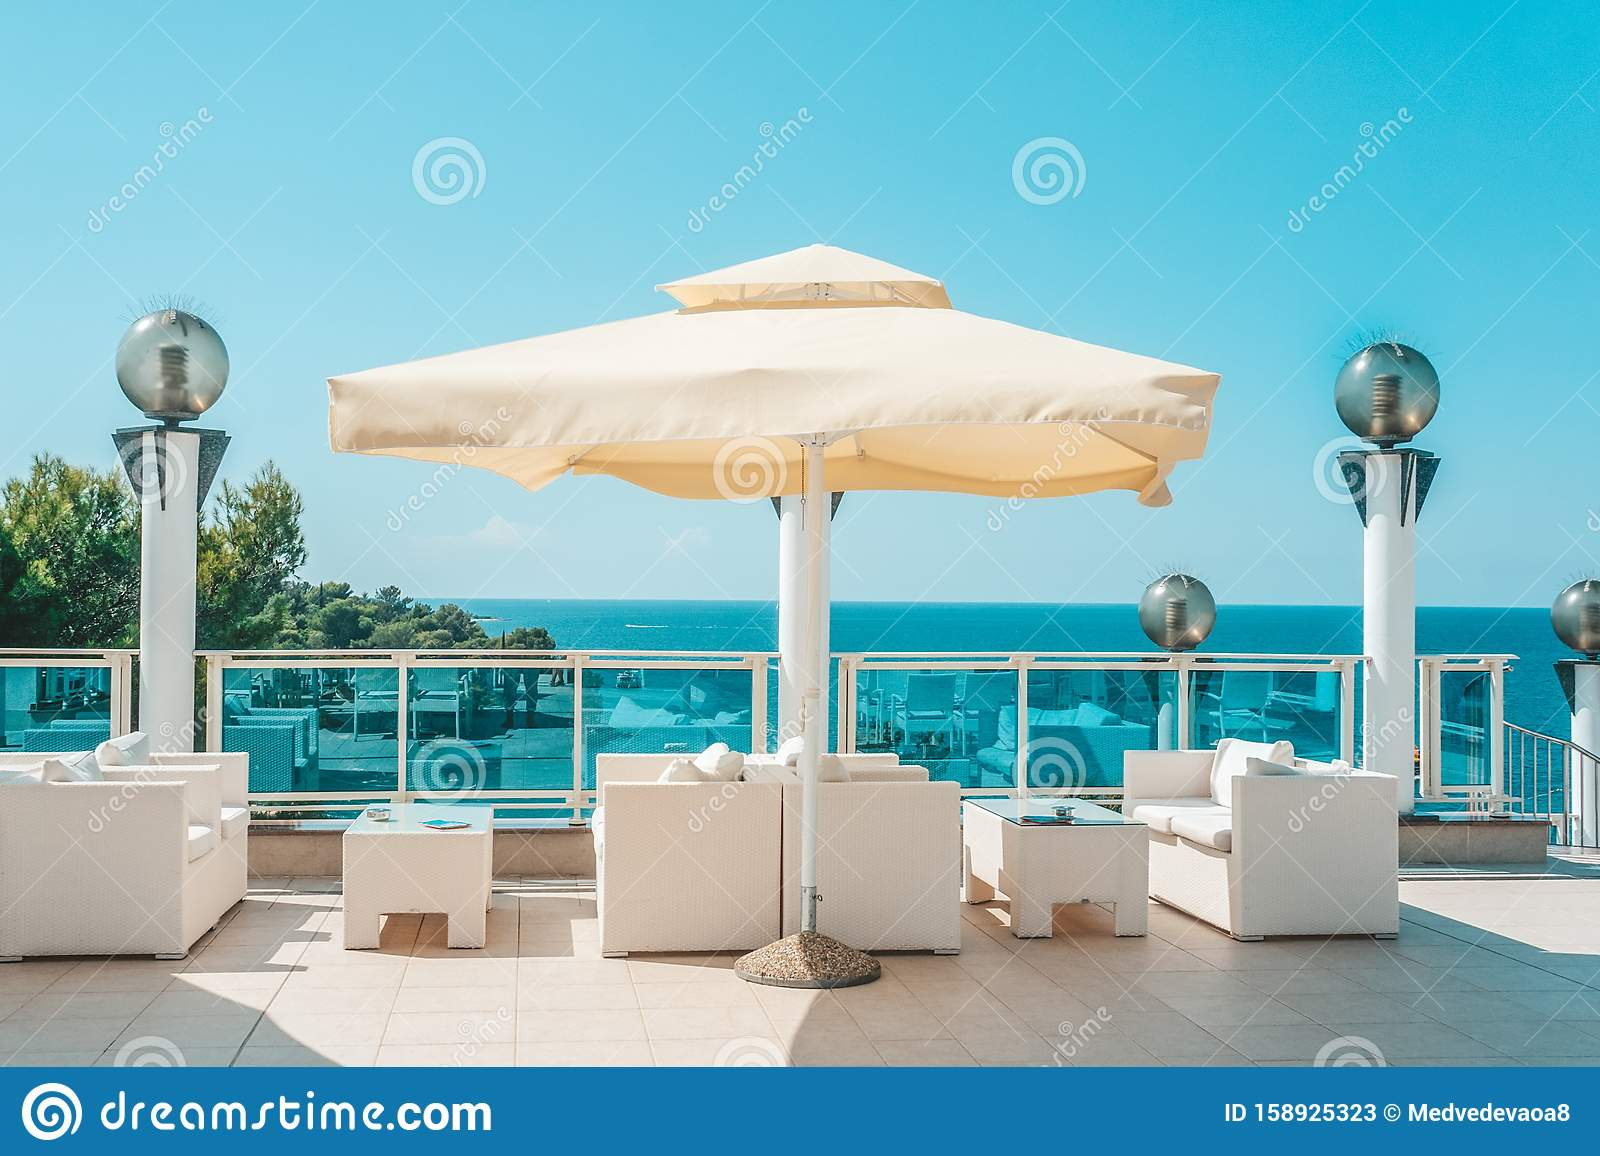 Large White Umbrella And Outdoor Furniture Sofas And Rattan Chairs With Cushions And A Glass Topped Table Place To Relax On The Stock Image Image Of Beach Glass 158925323